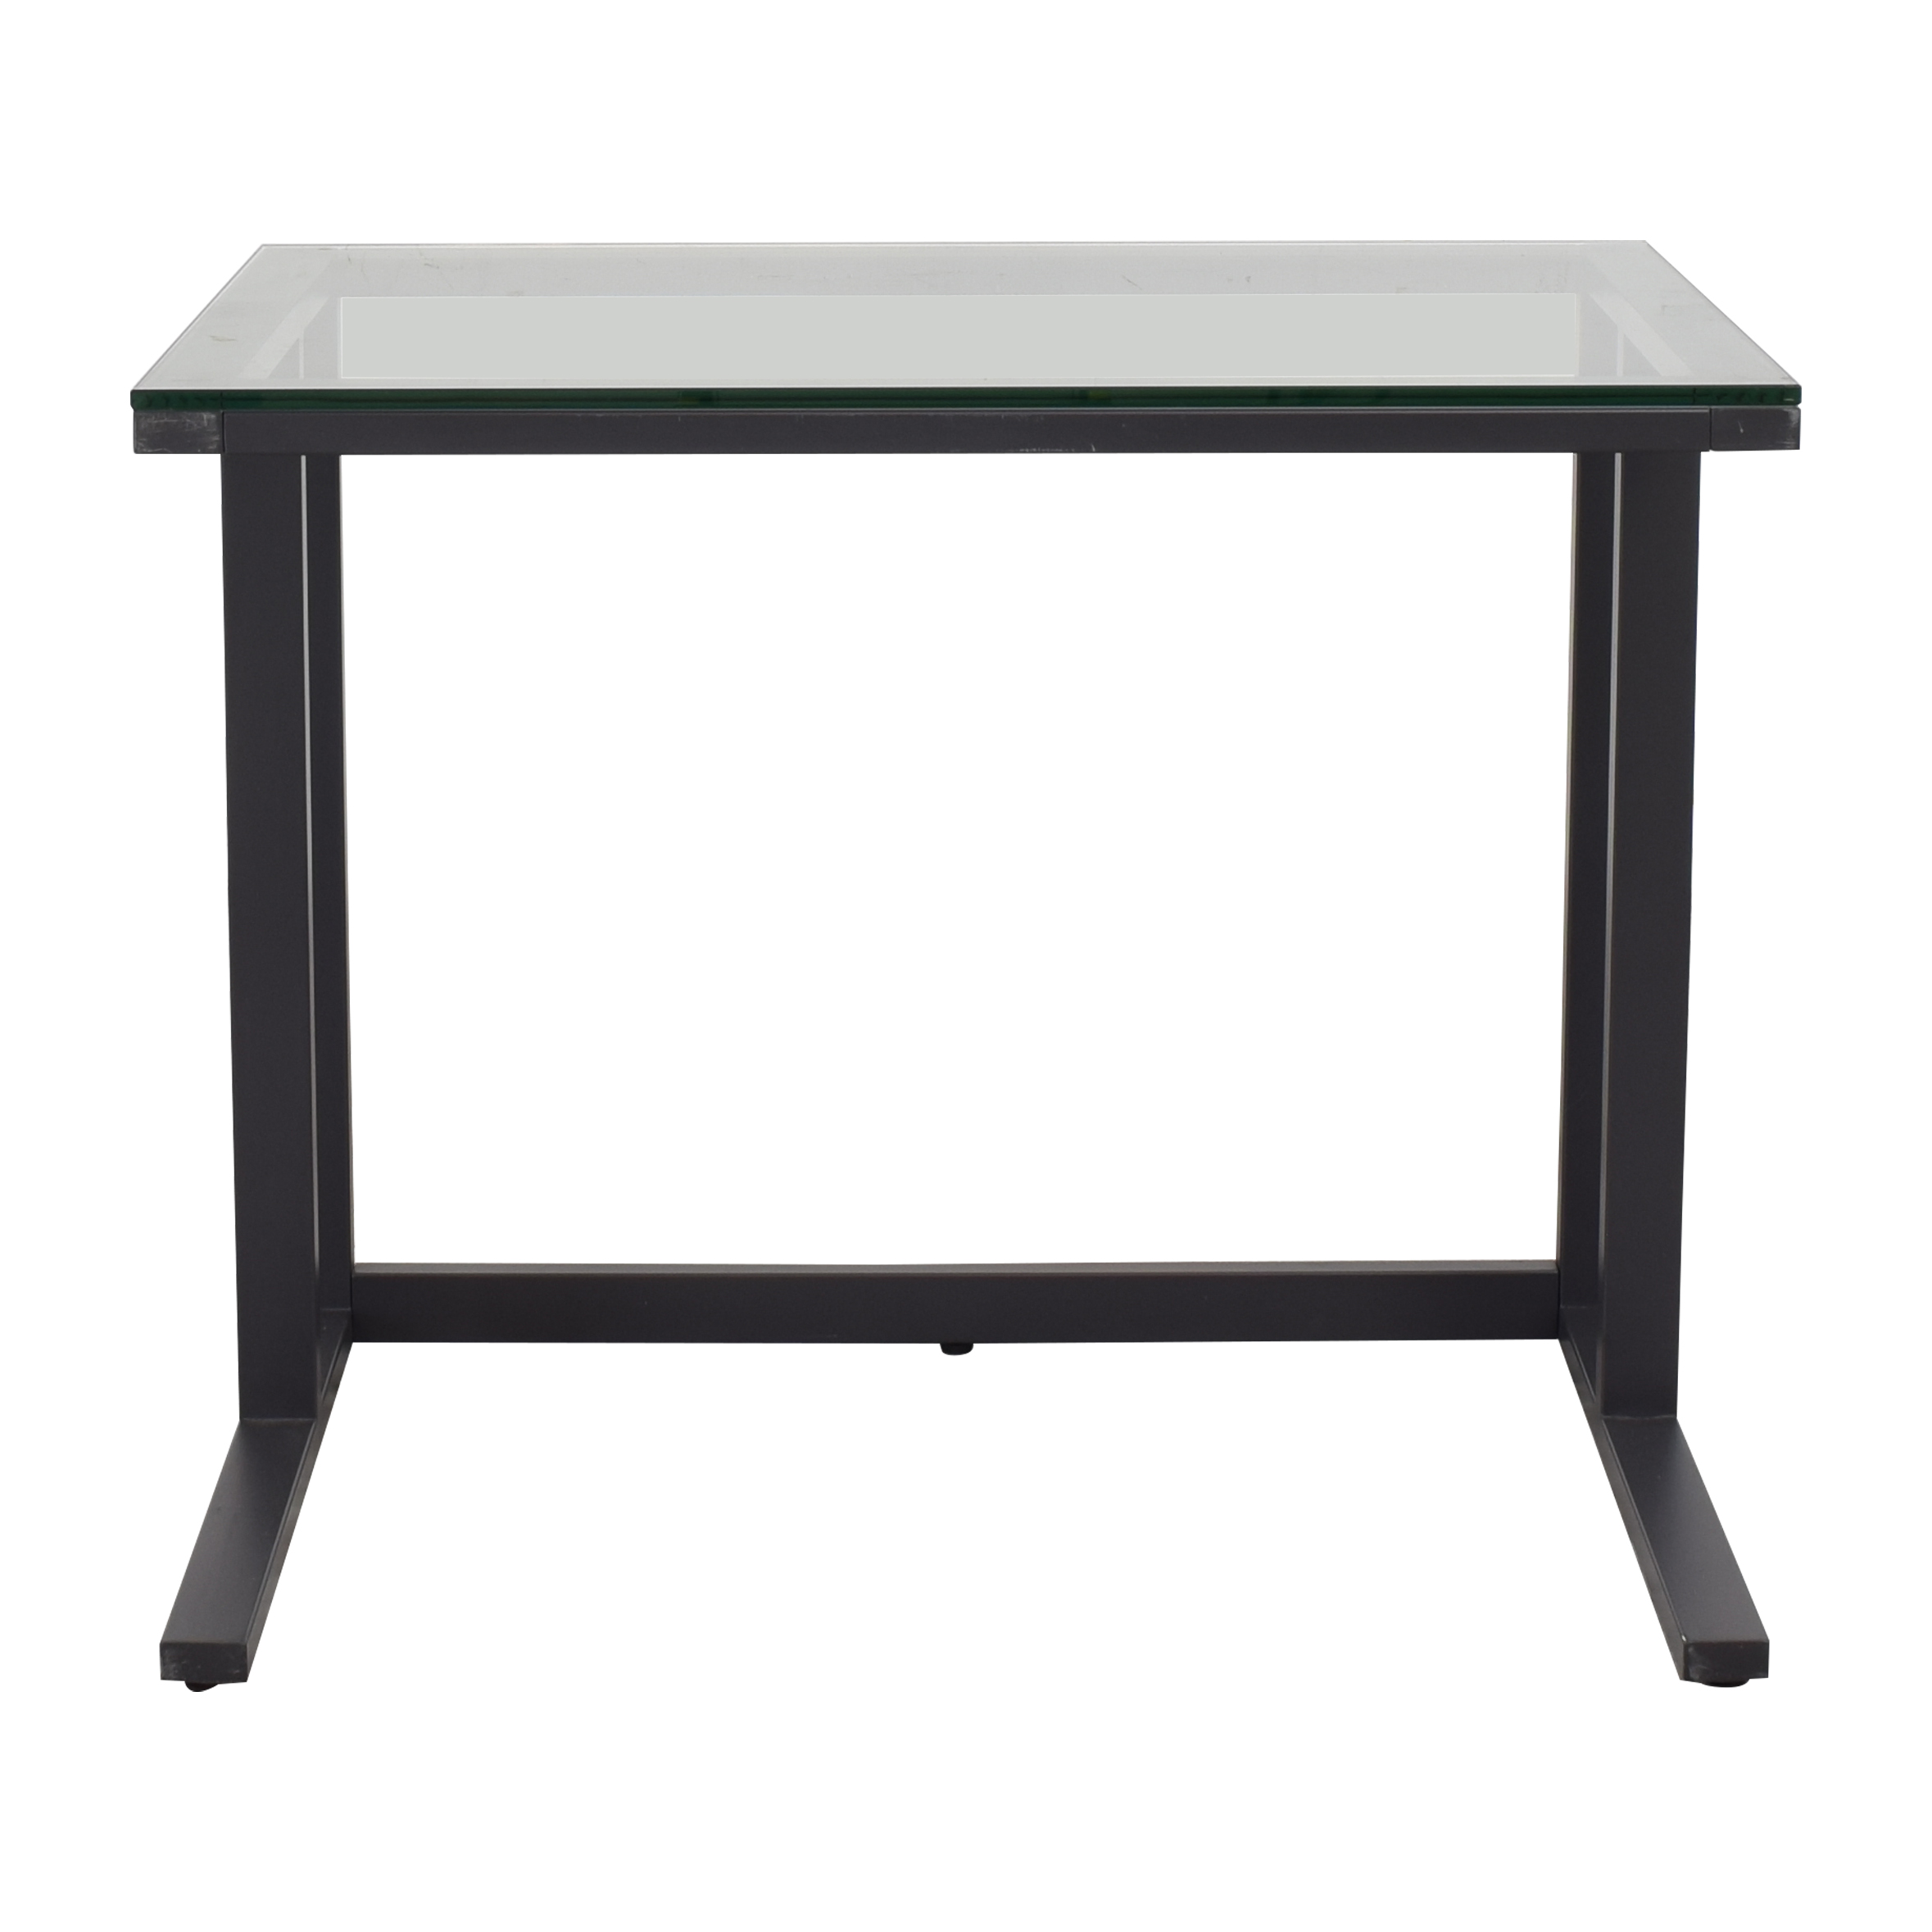 Crate & Barrel Crate & Barrel Glass Top Desk price